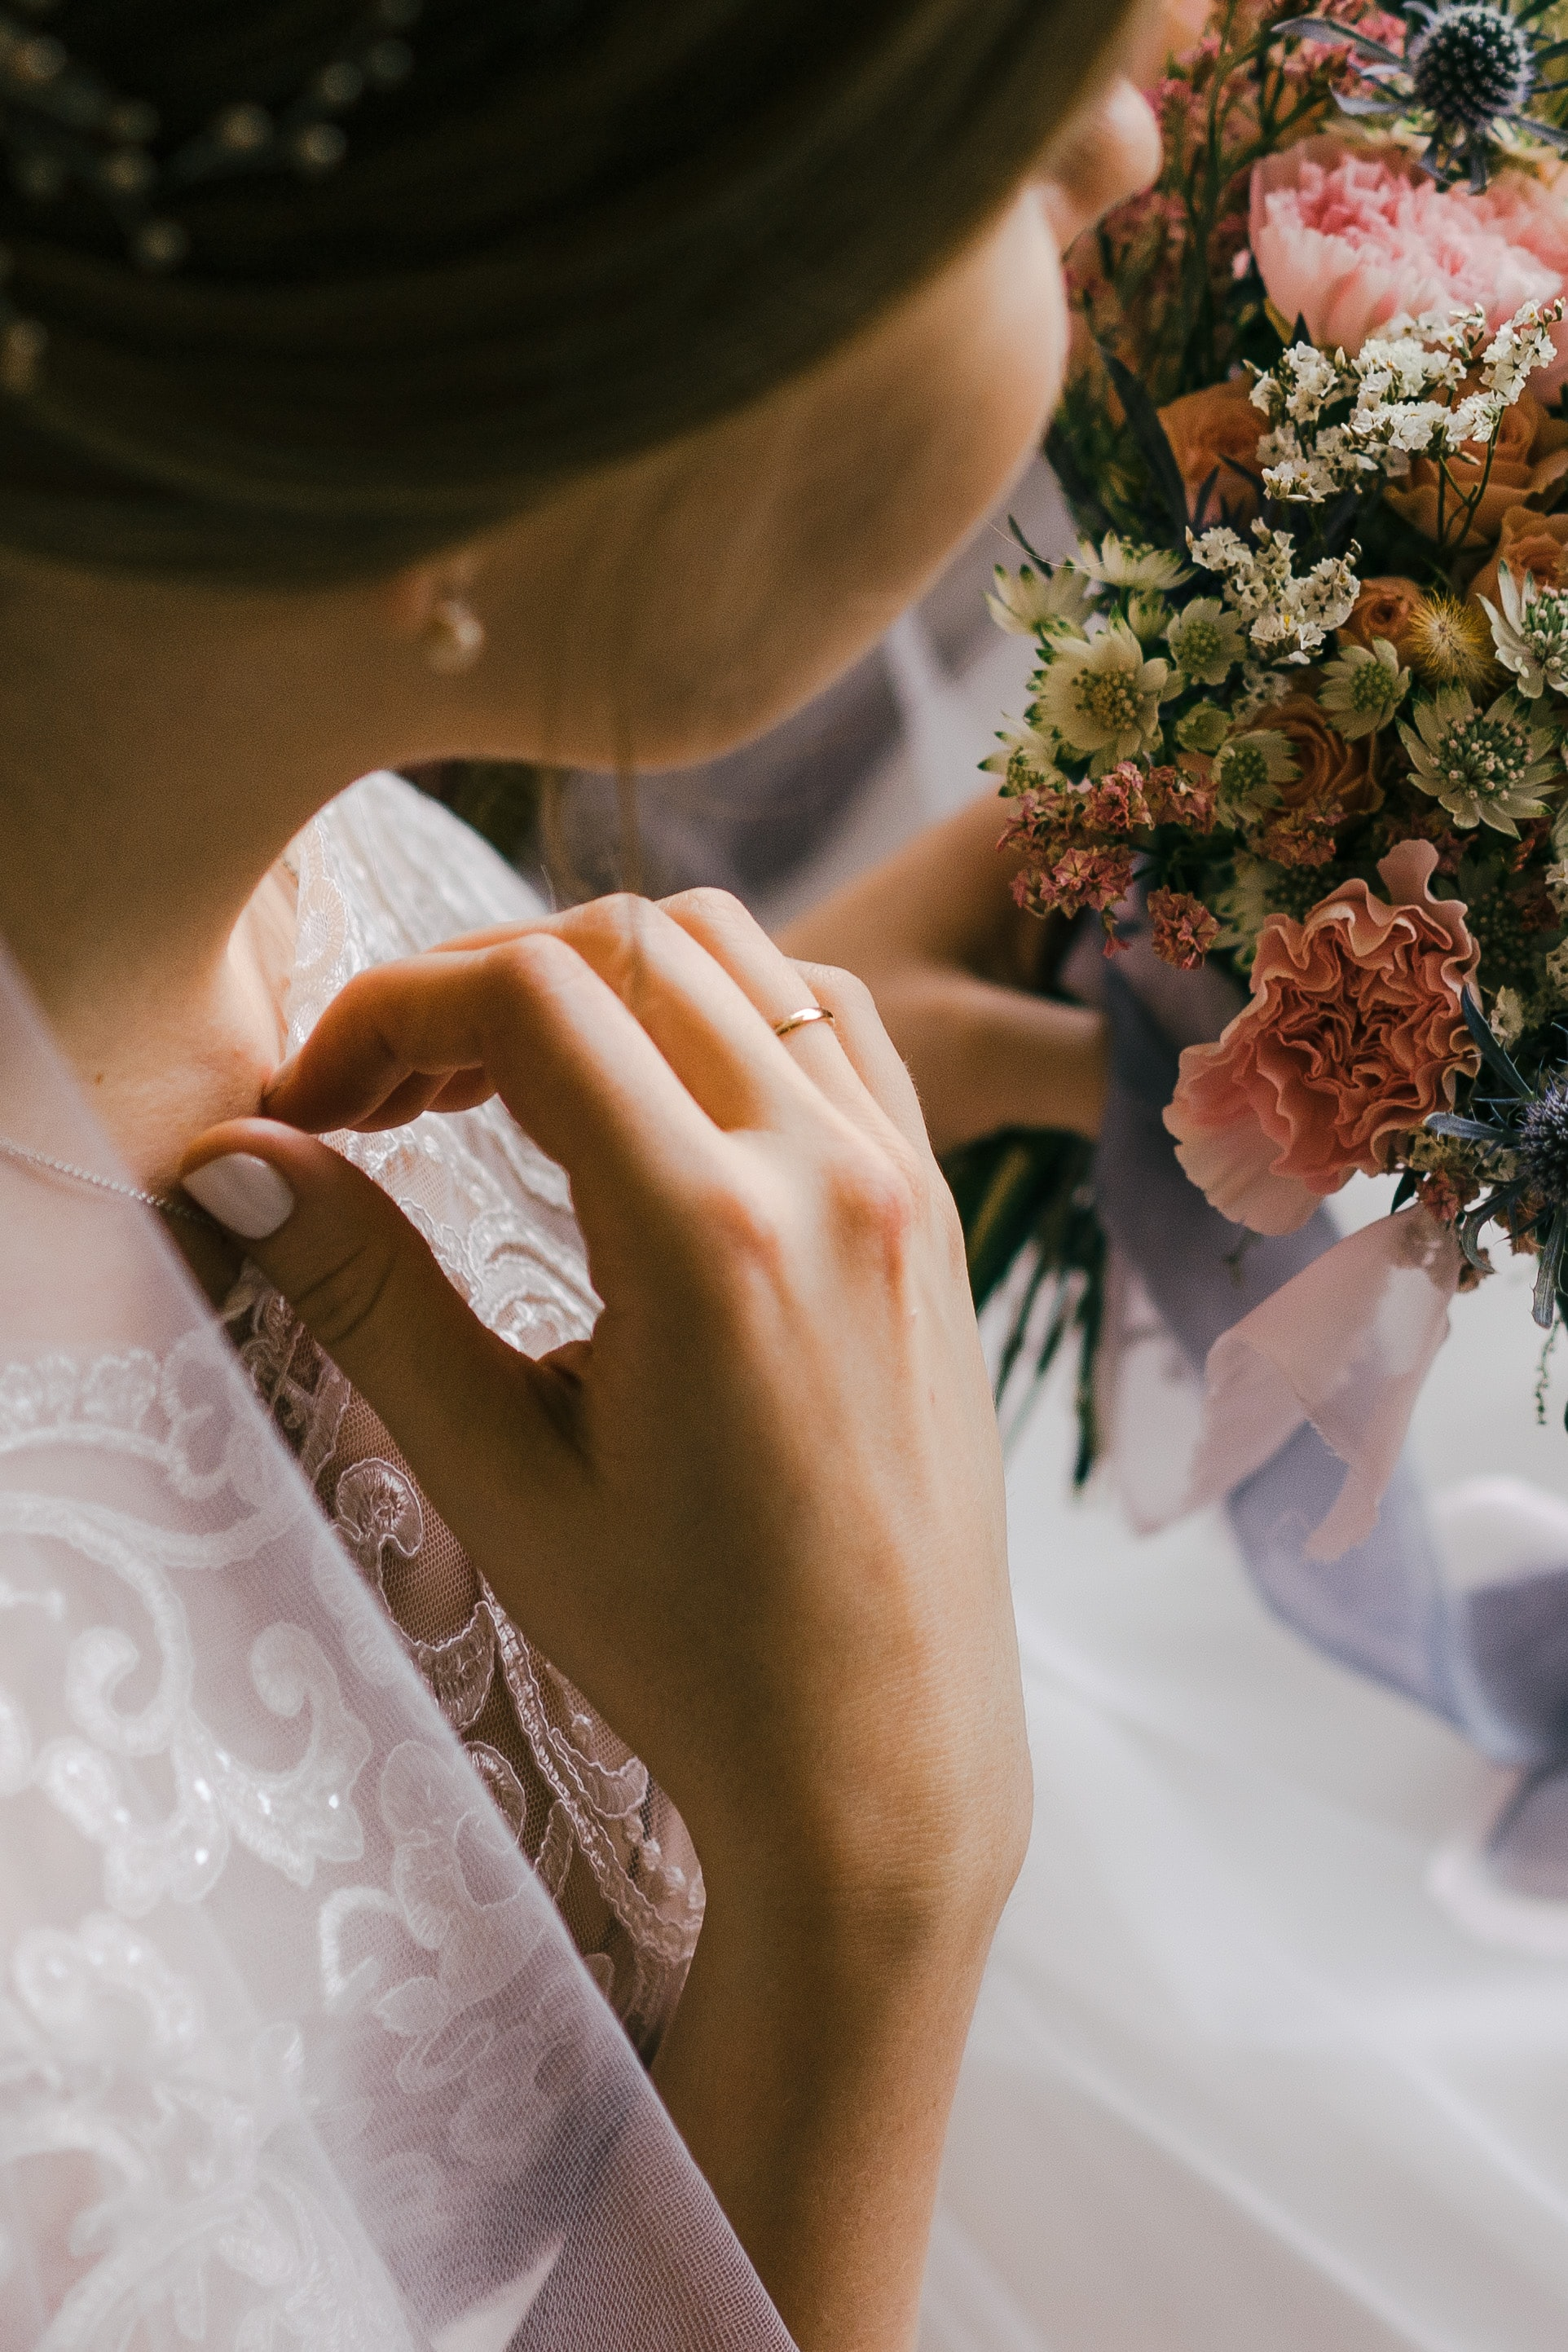 selective focus photography of woman in wedding dress holding flower